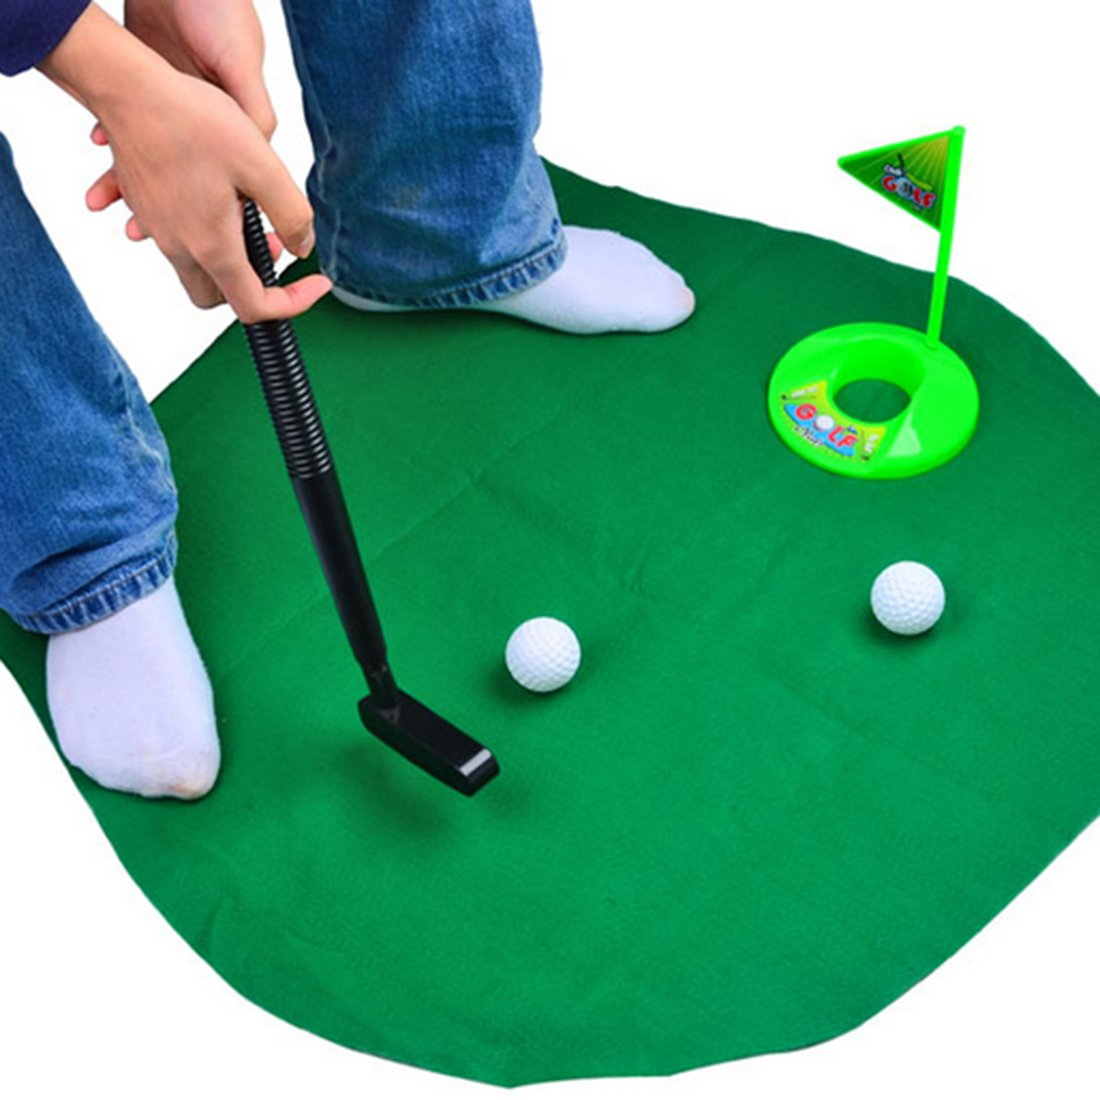 Toilet Golf, WOLFBUSH Bathroom Toilet Golf Game Sports Toy Play Set A Whimsical Golfing Indoor Practice Mini Golf Gag Gift Set Kids Men Funny Novelty Toy Training Accessory Aid for Any Toilet